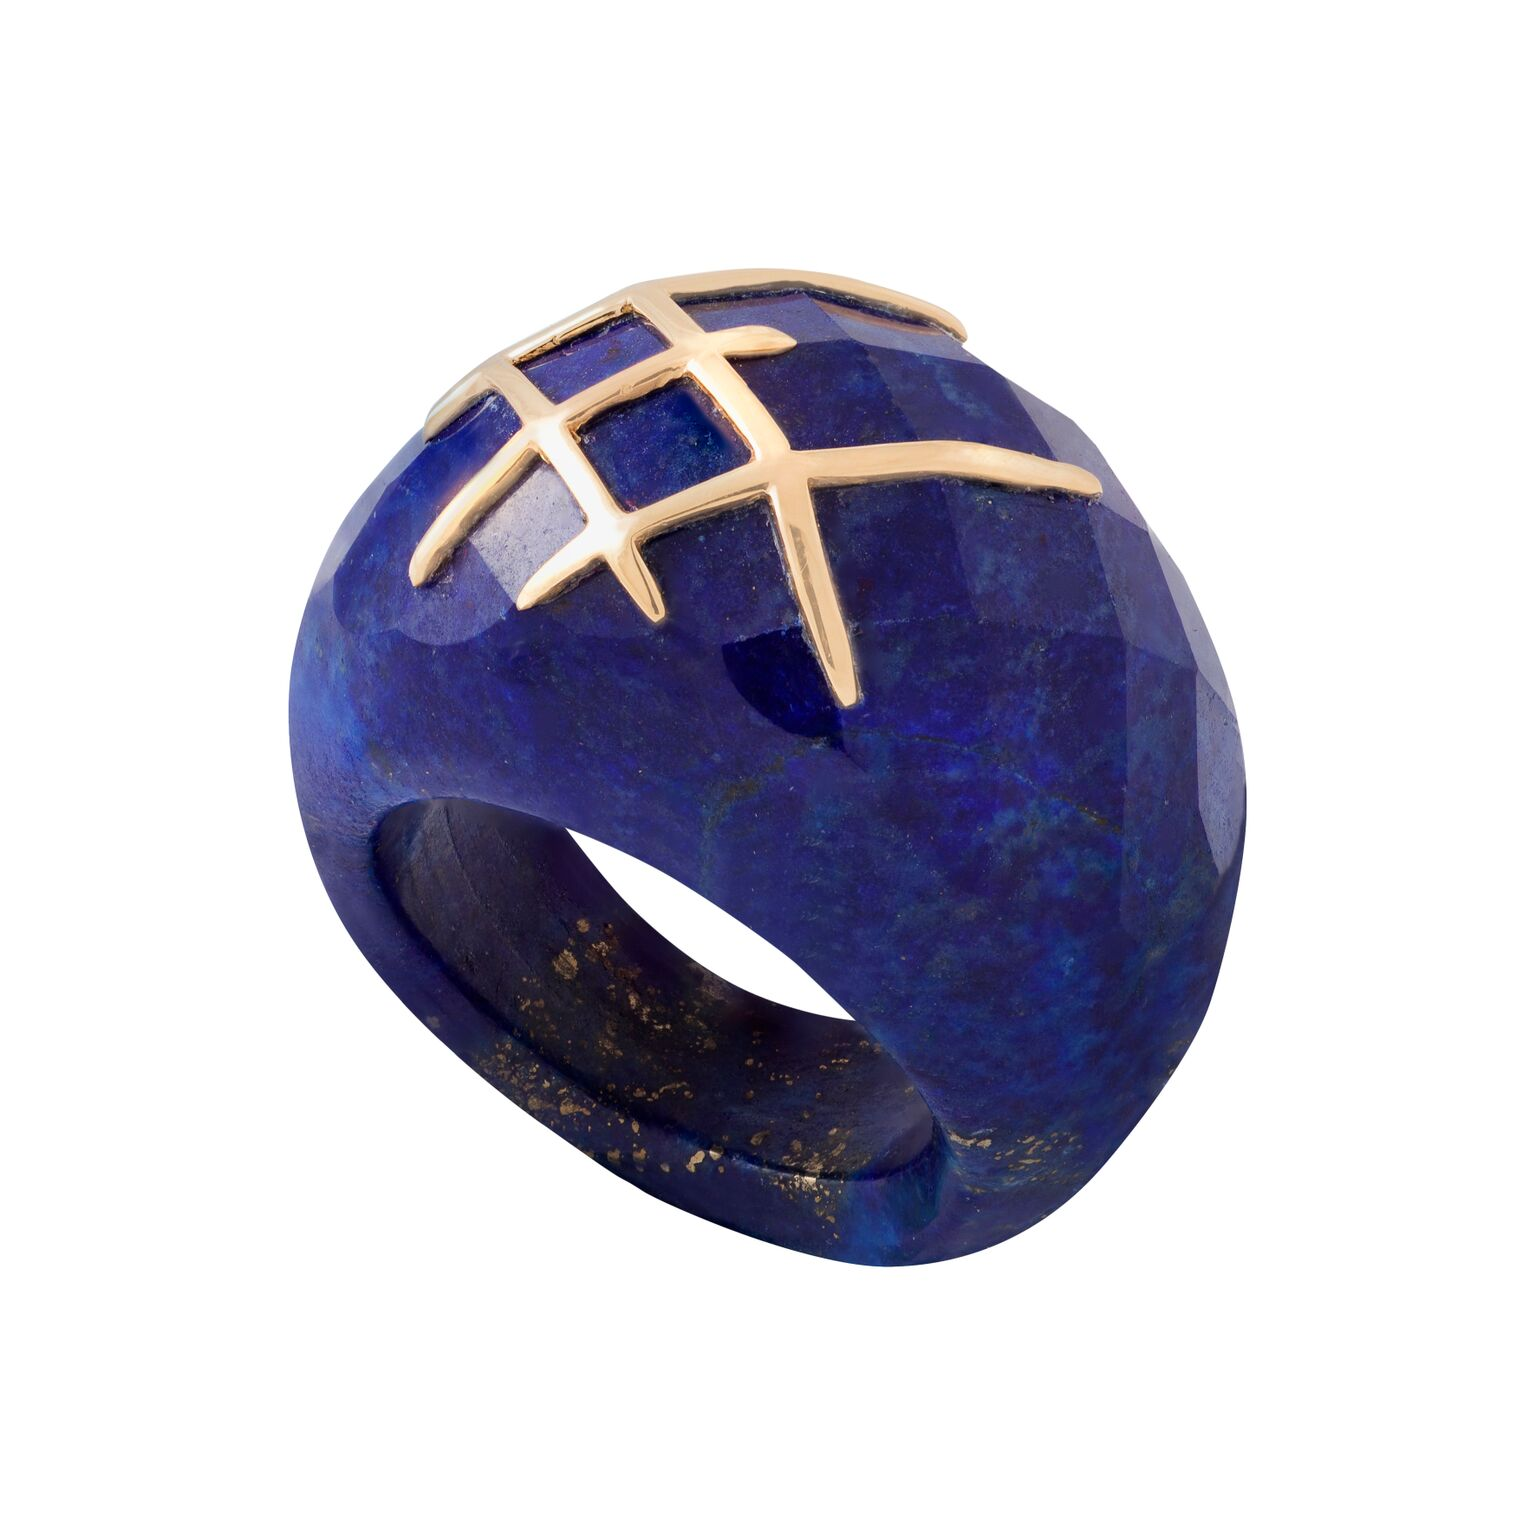 Lapis lazuli (Afghanistan) and 18k yellow gold ring